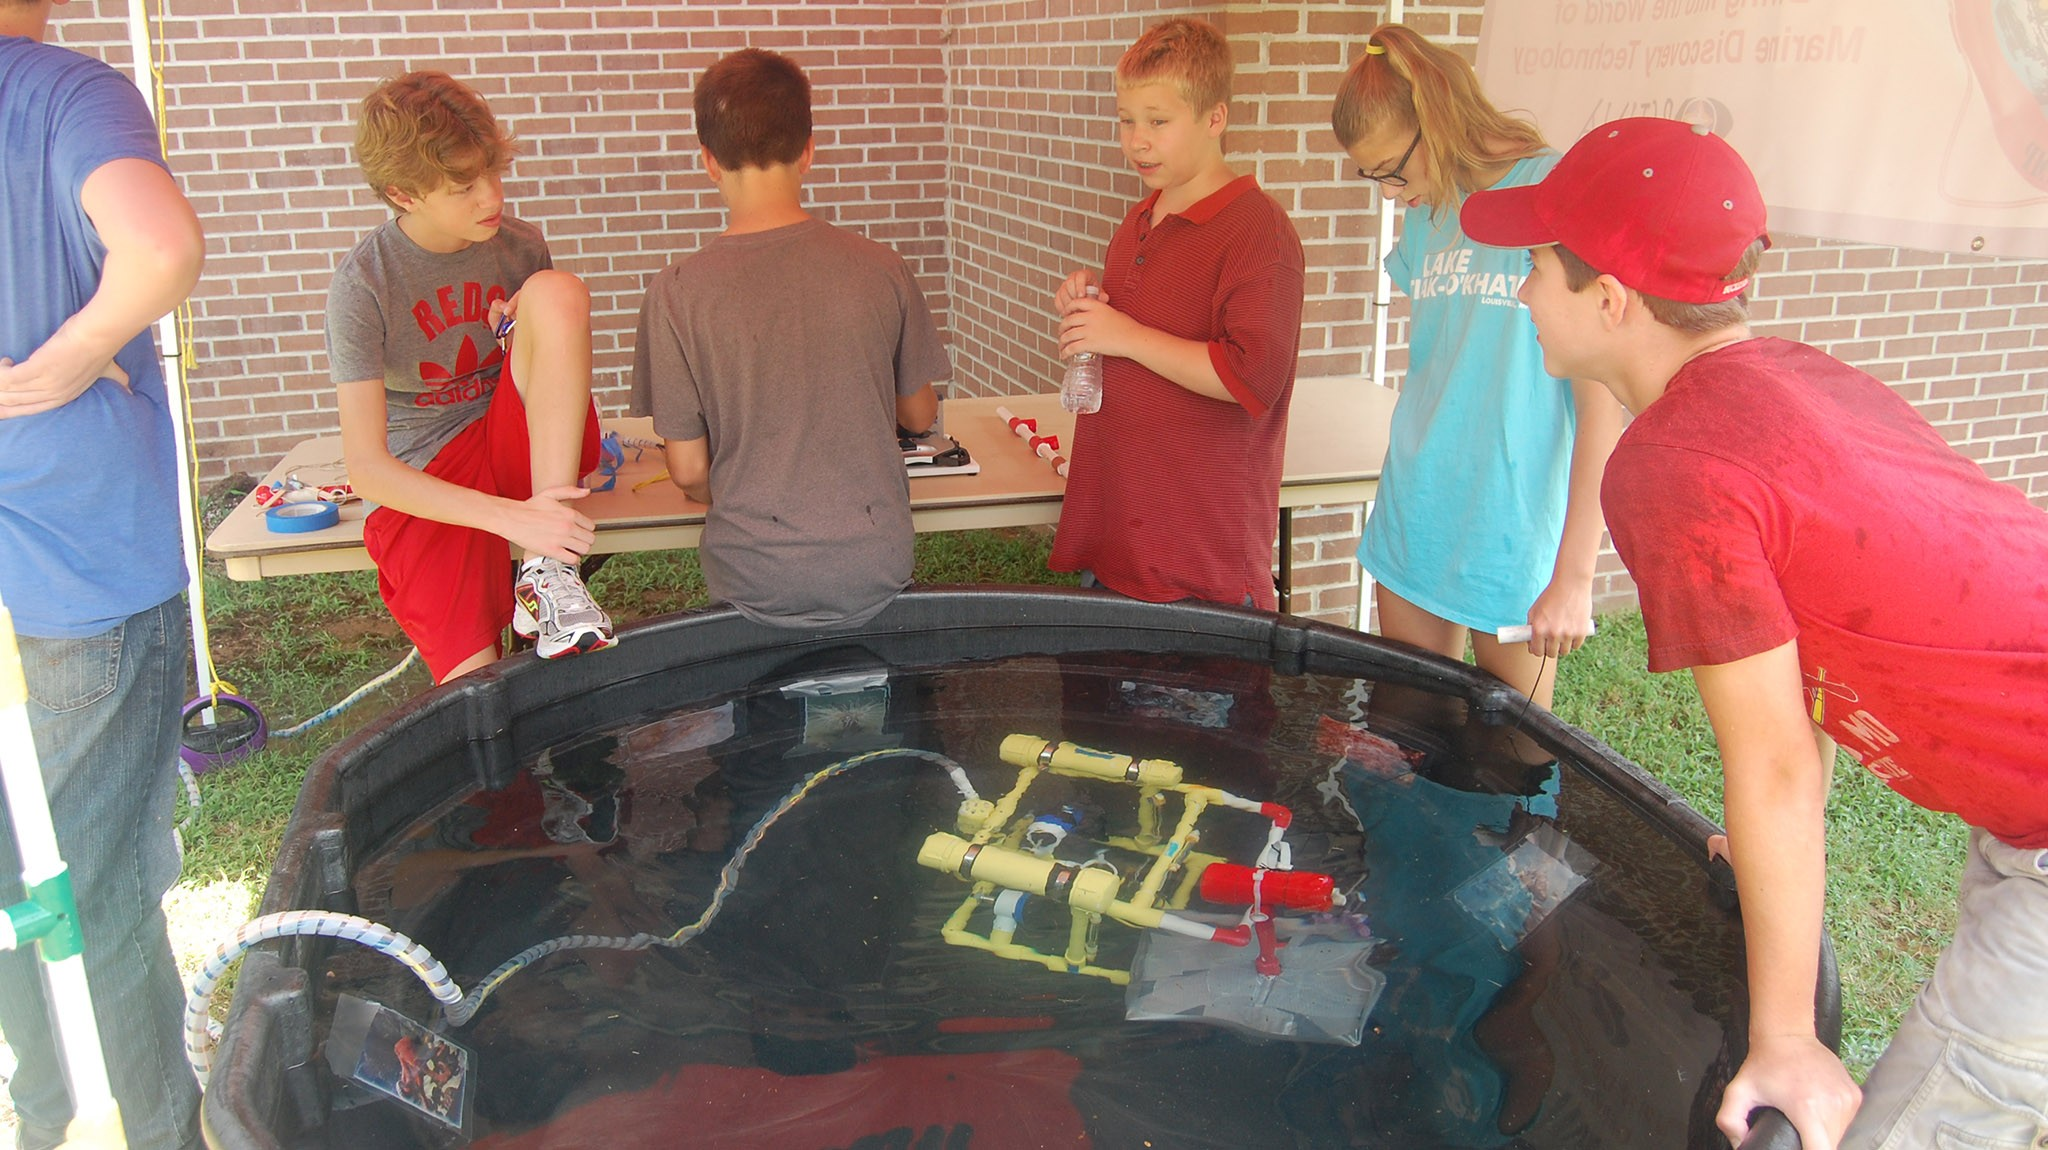 ROV Camp students watch the ROV as it moves around the tank.